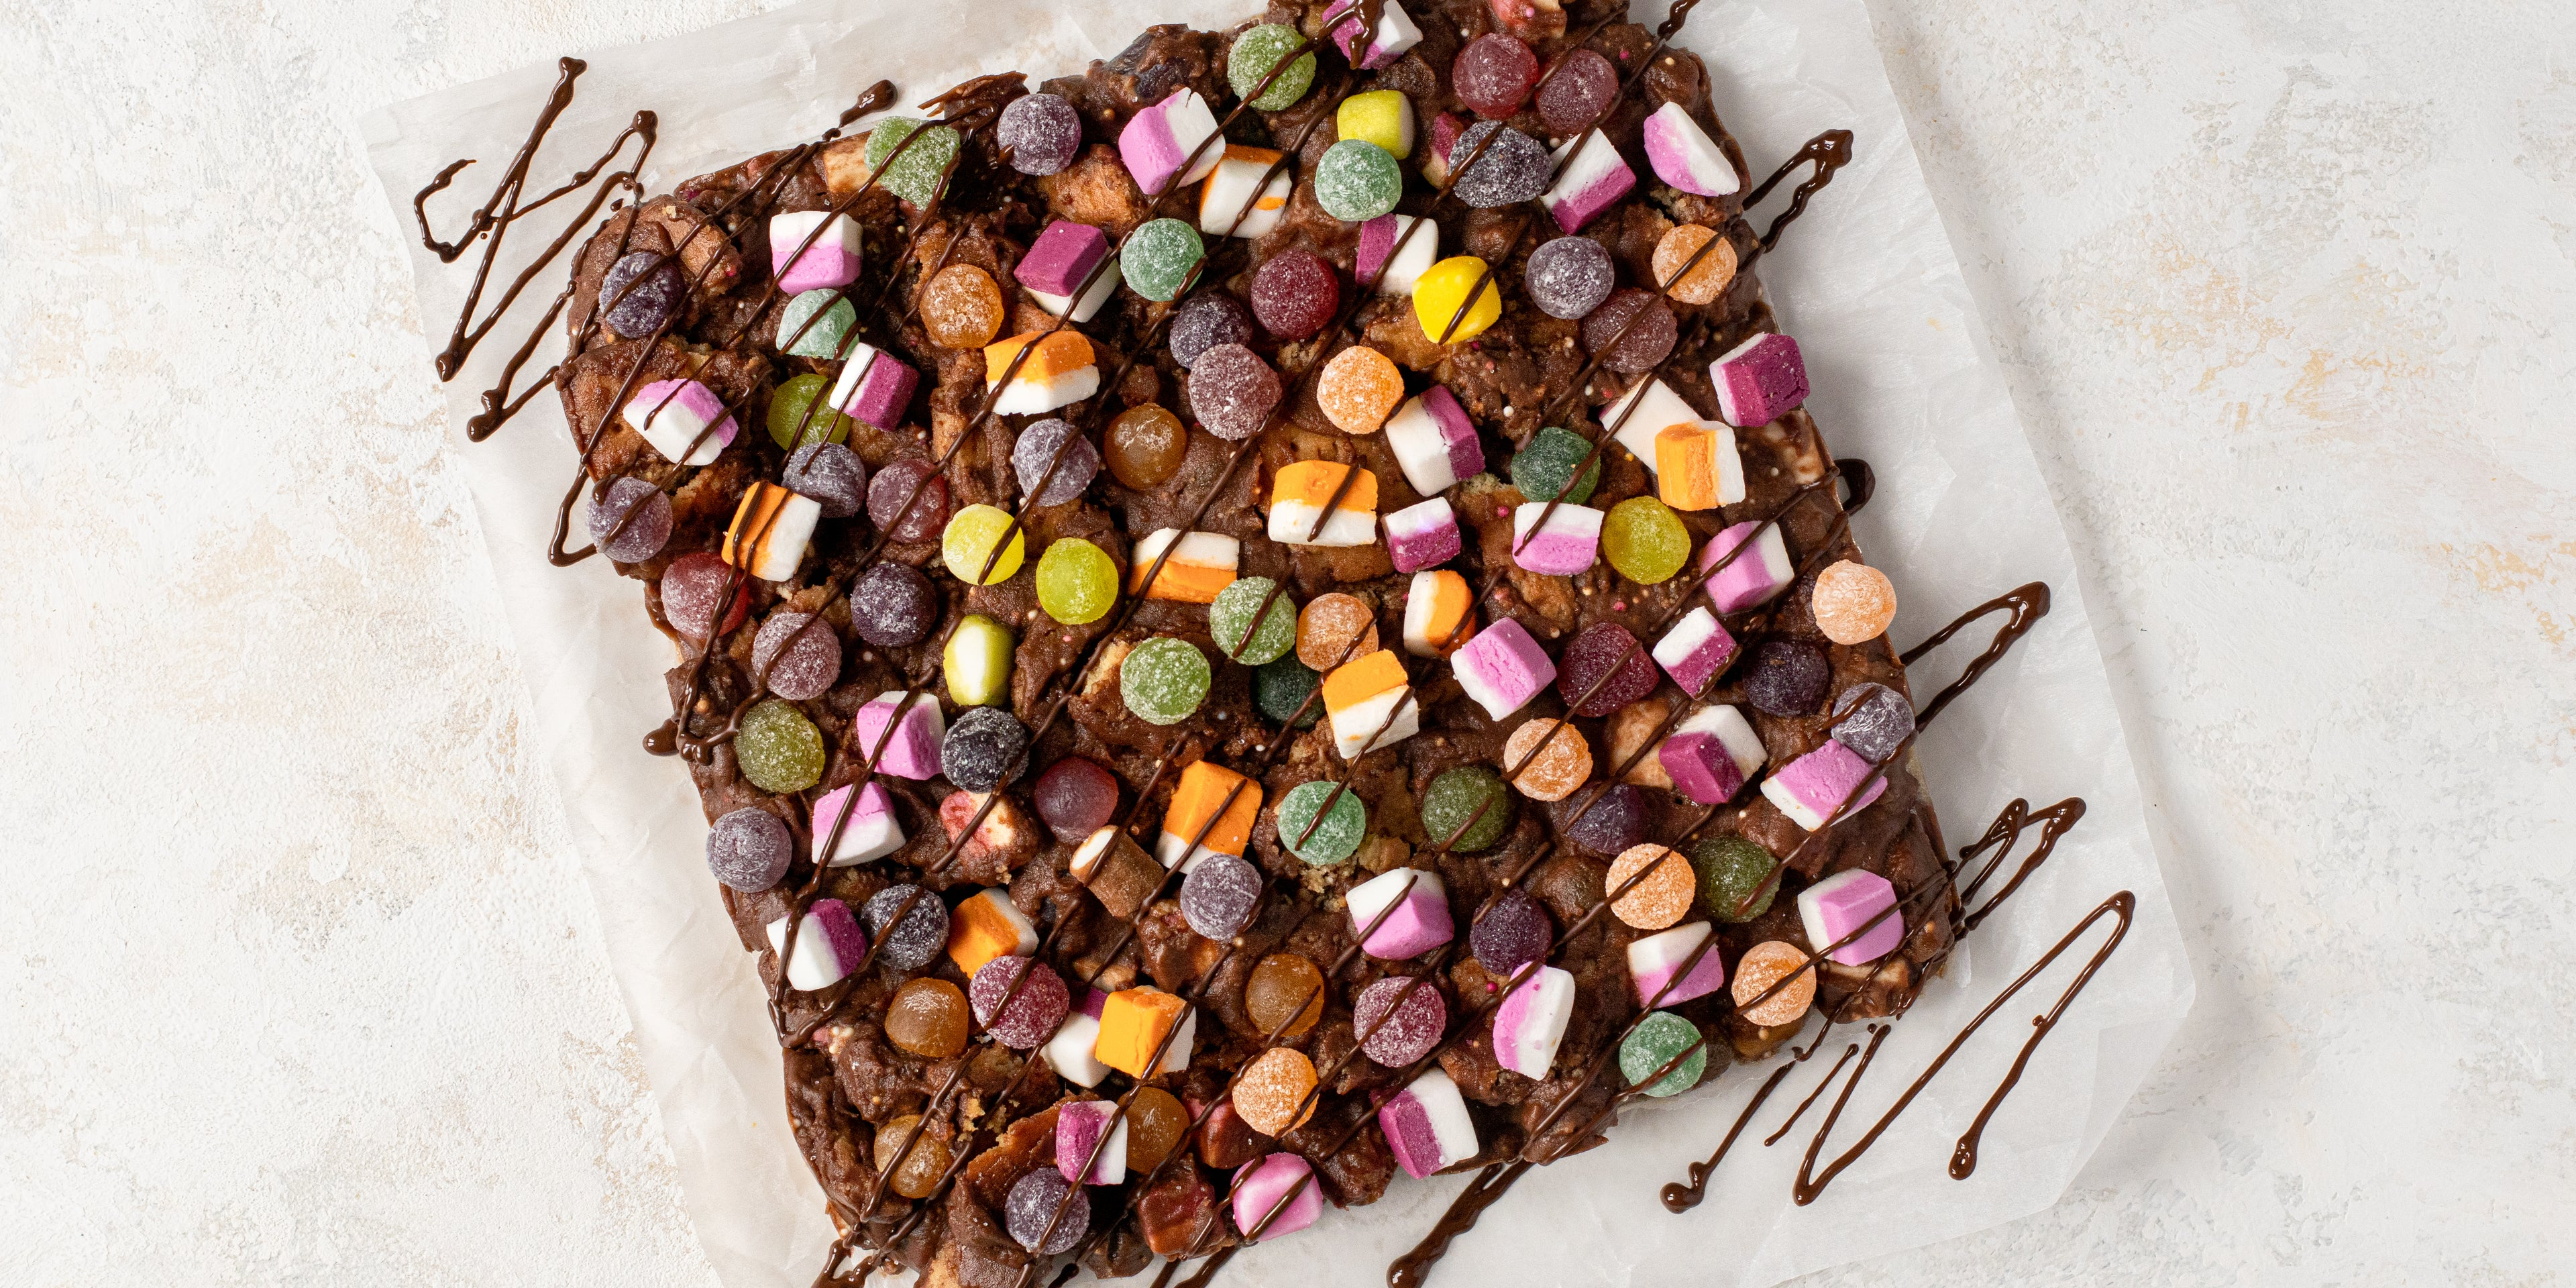 Top view of Sweetie Rocky Road on a sheet of baking paper, drizzled with chocolate